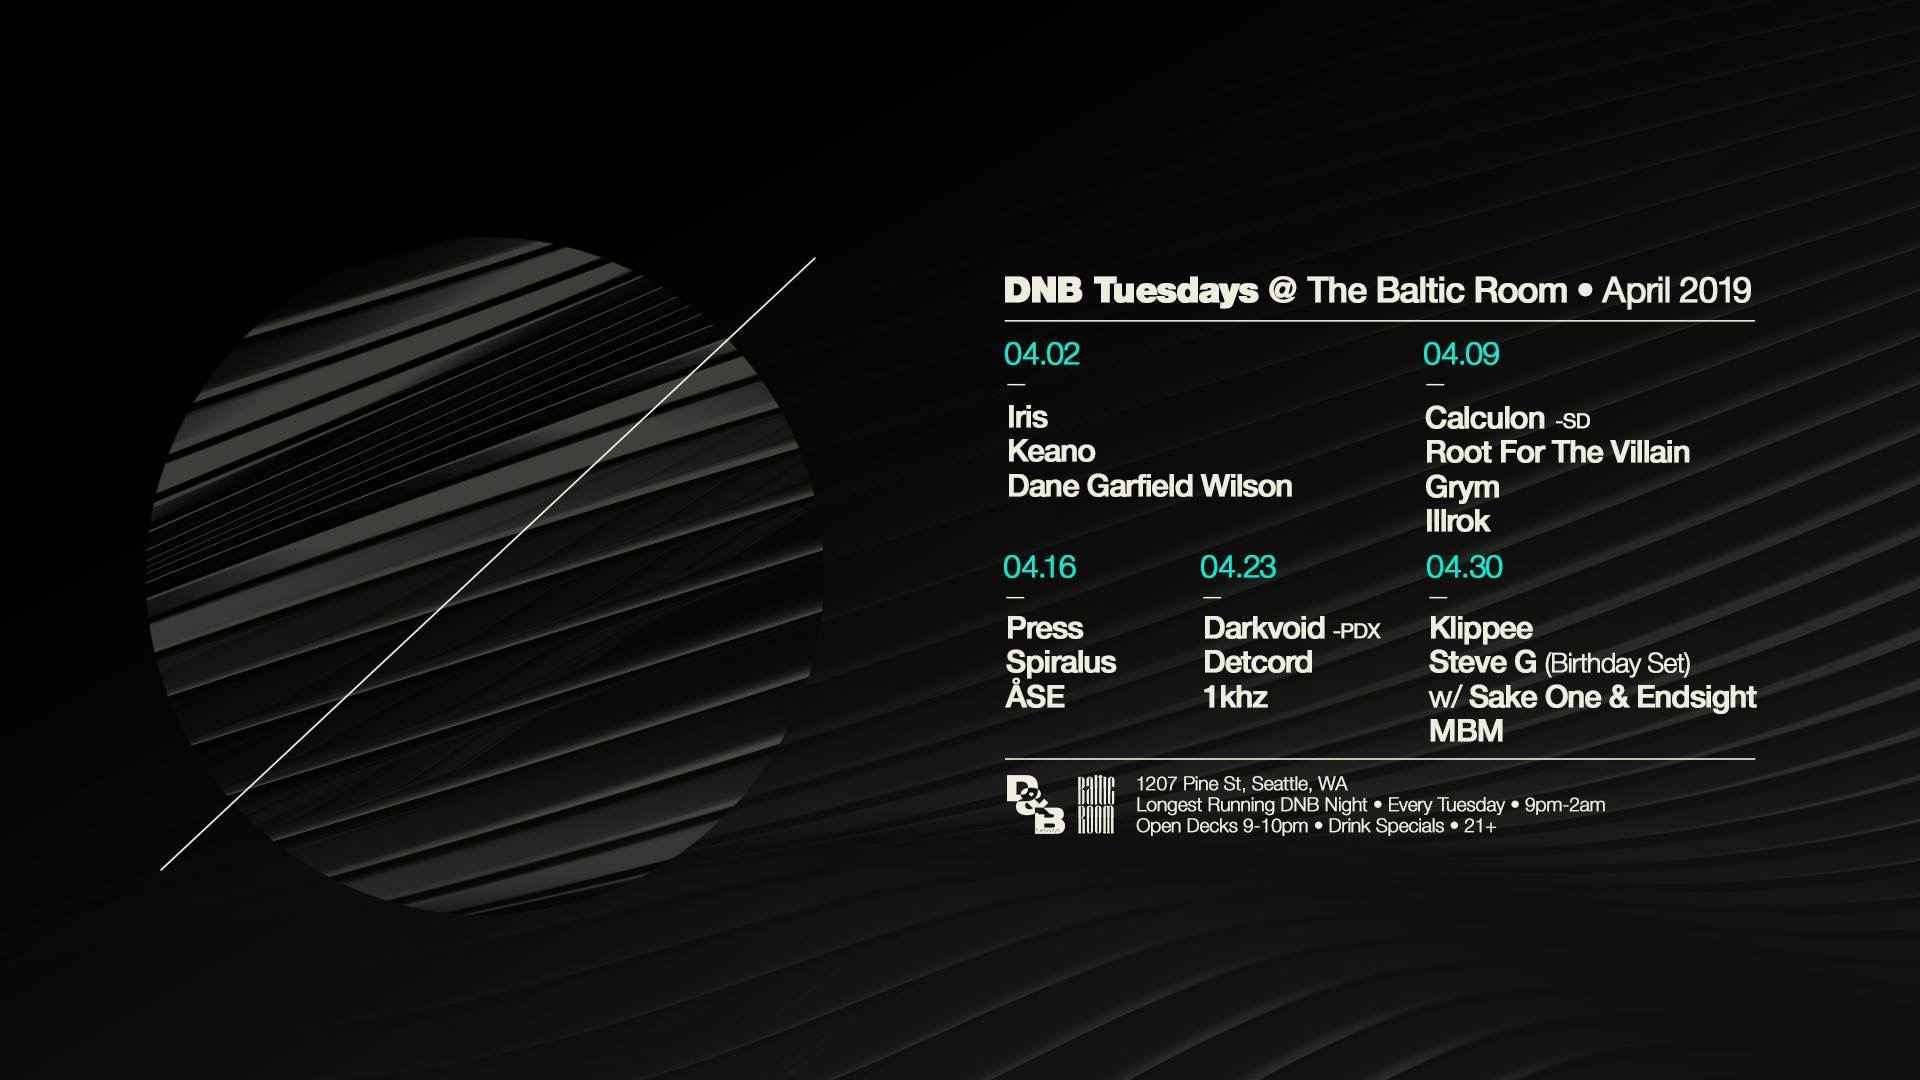 Darvoid at DNB Tuesday's